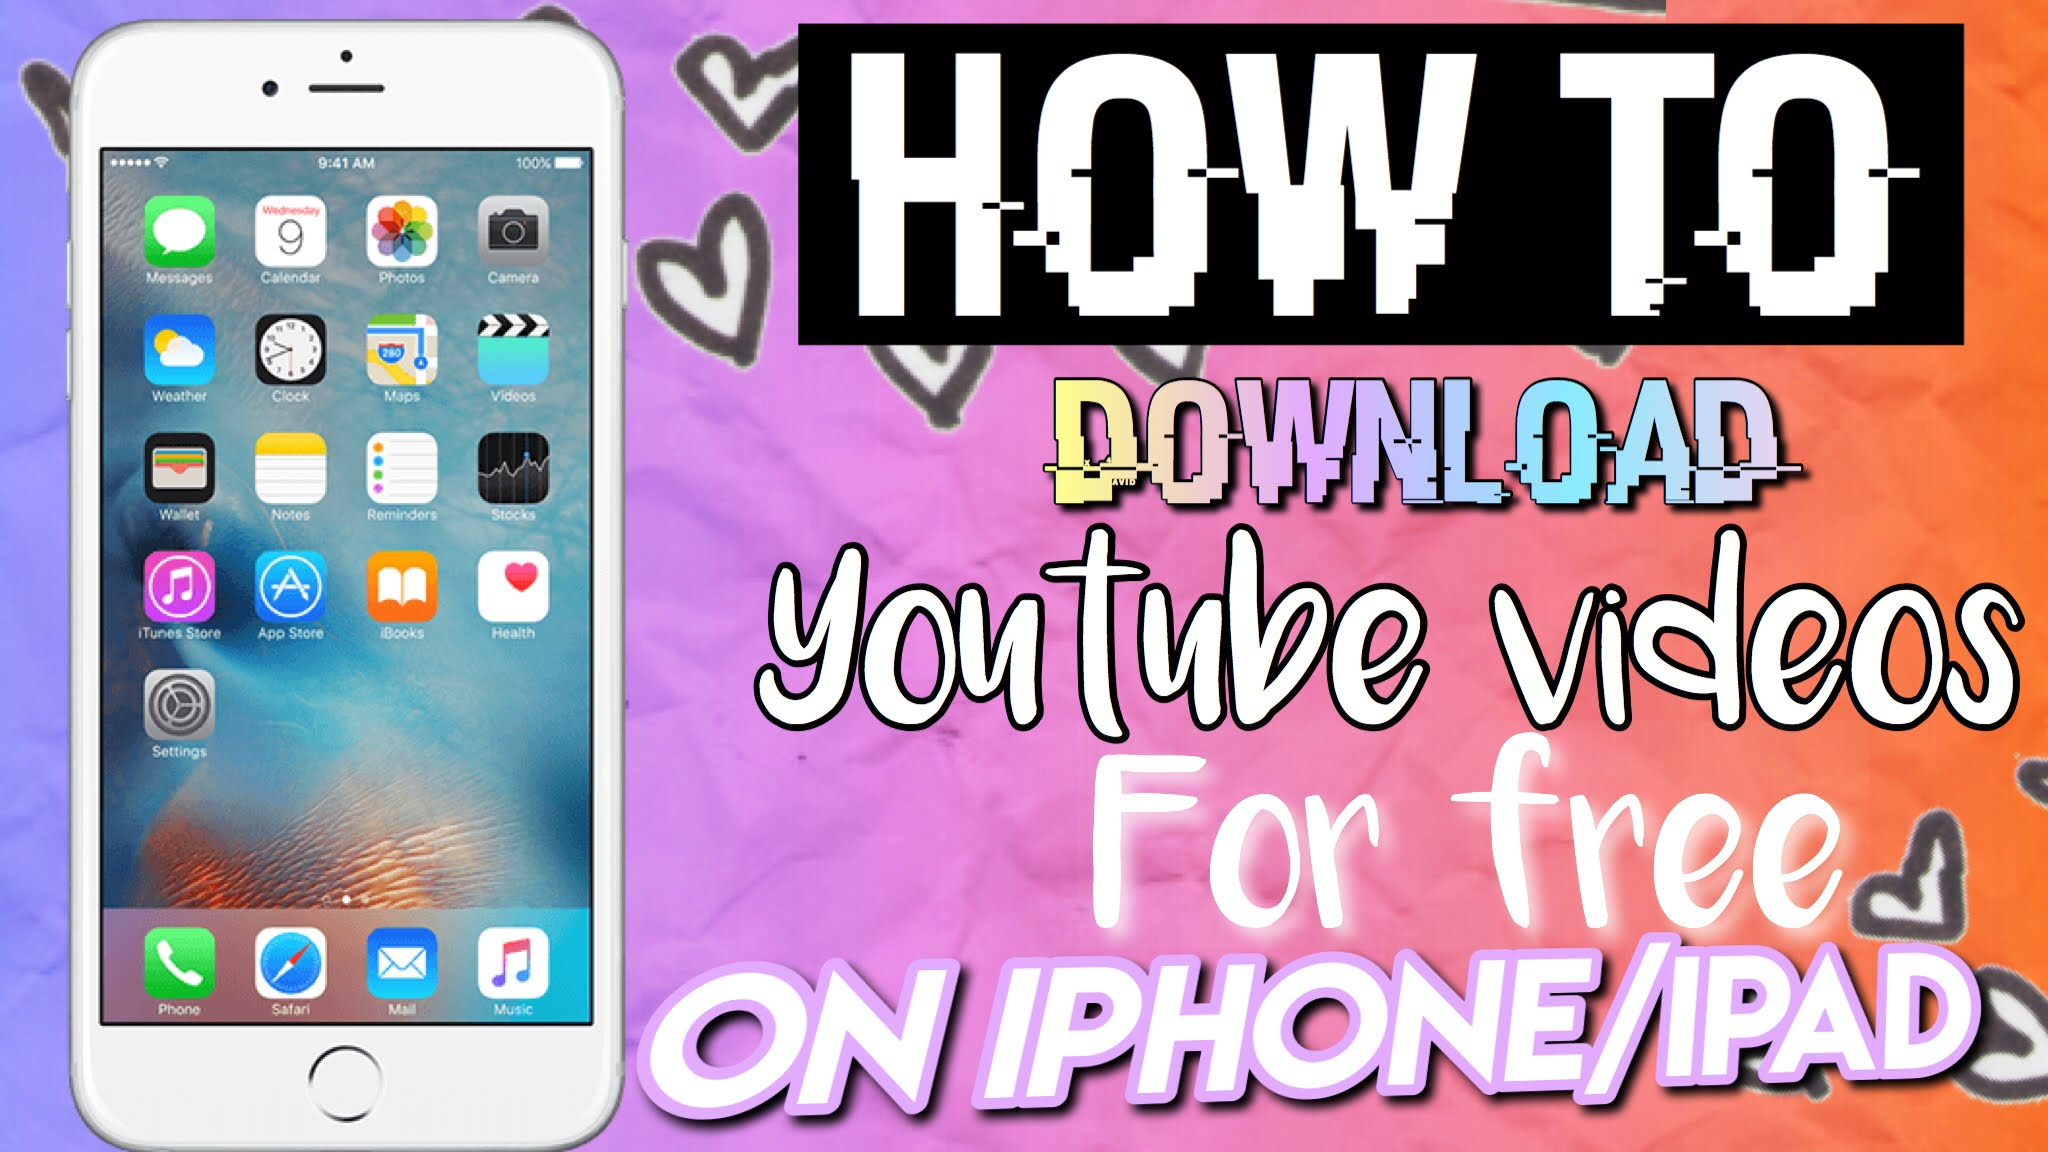 Download youtube videos as mp3 on iphoneipad download youtube videos as mp3 ccuart Image collections